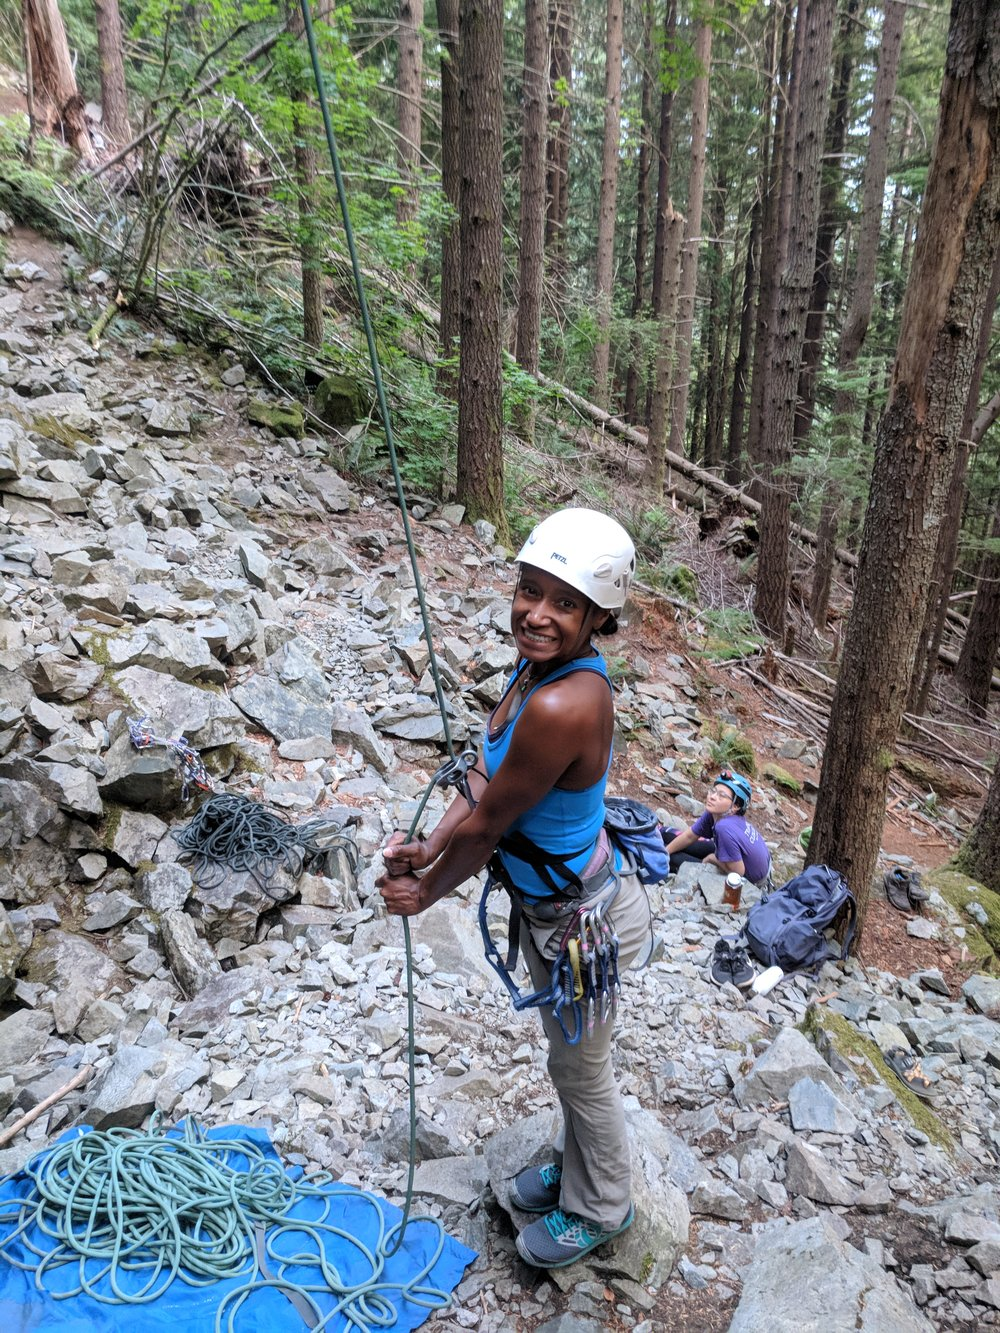 Alina Tennie belaying at the Motherland climbing area at Exit 38 during the Never Stop Moving Exit 38 Climbing Series.